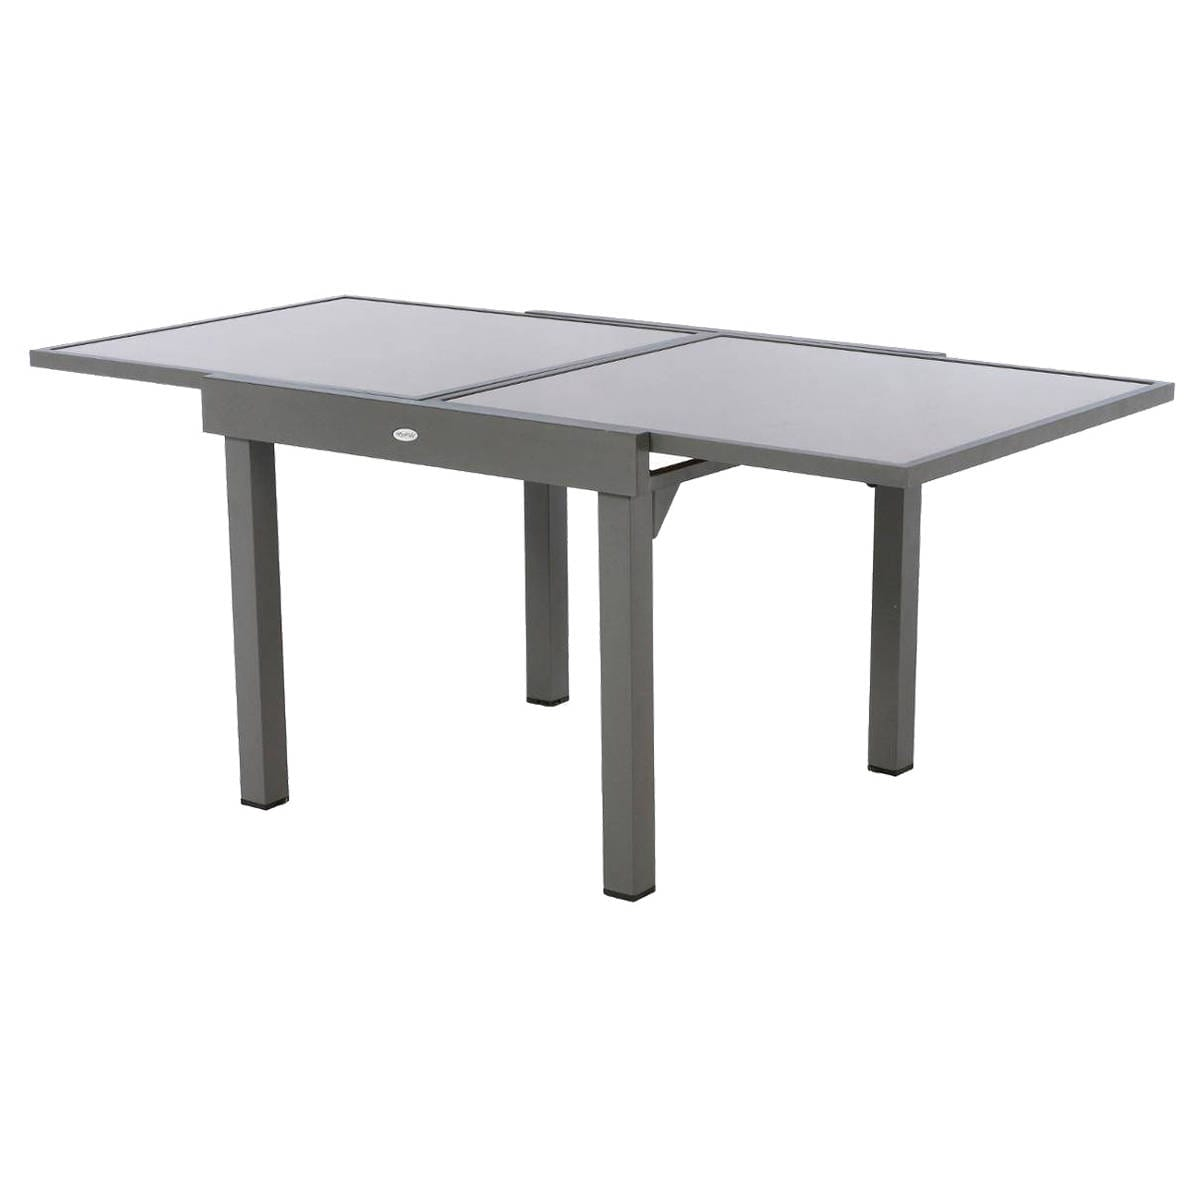 Table de jardin extensible Piazza Taupe & Mastic Hespéride 8 places